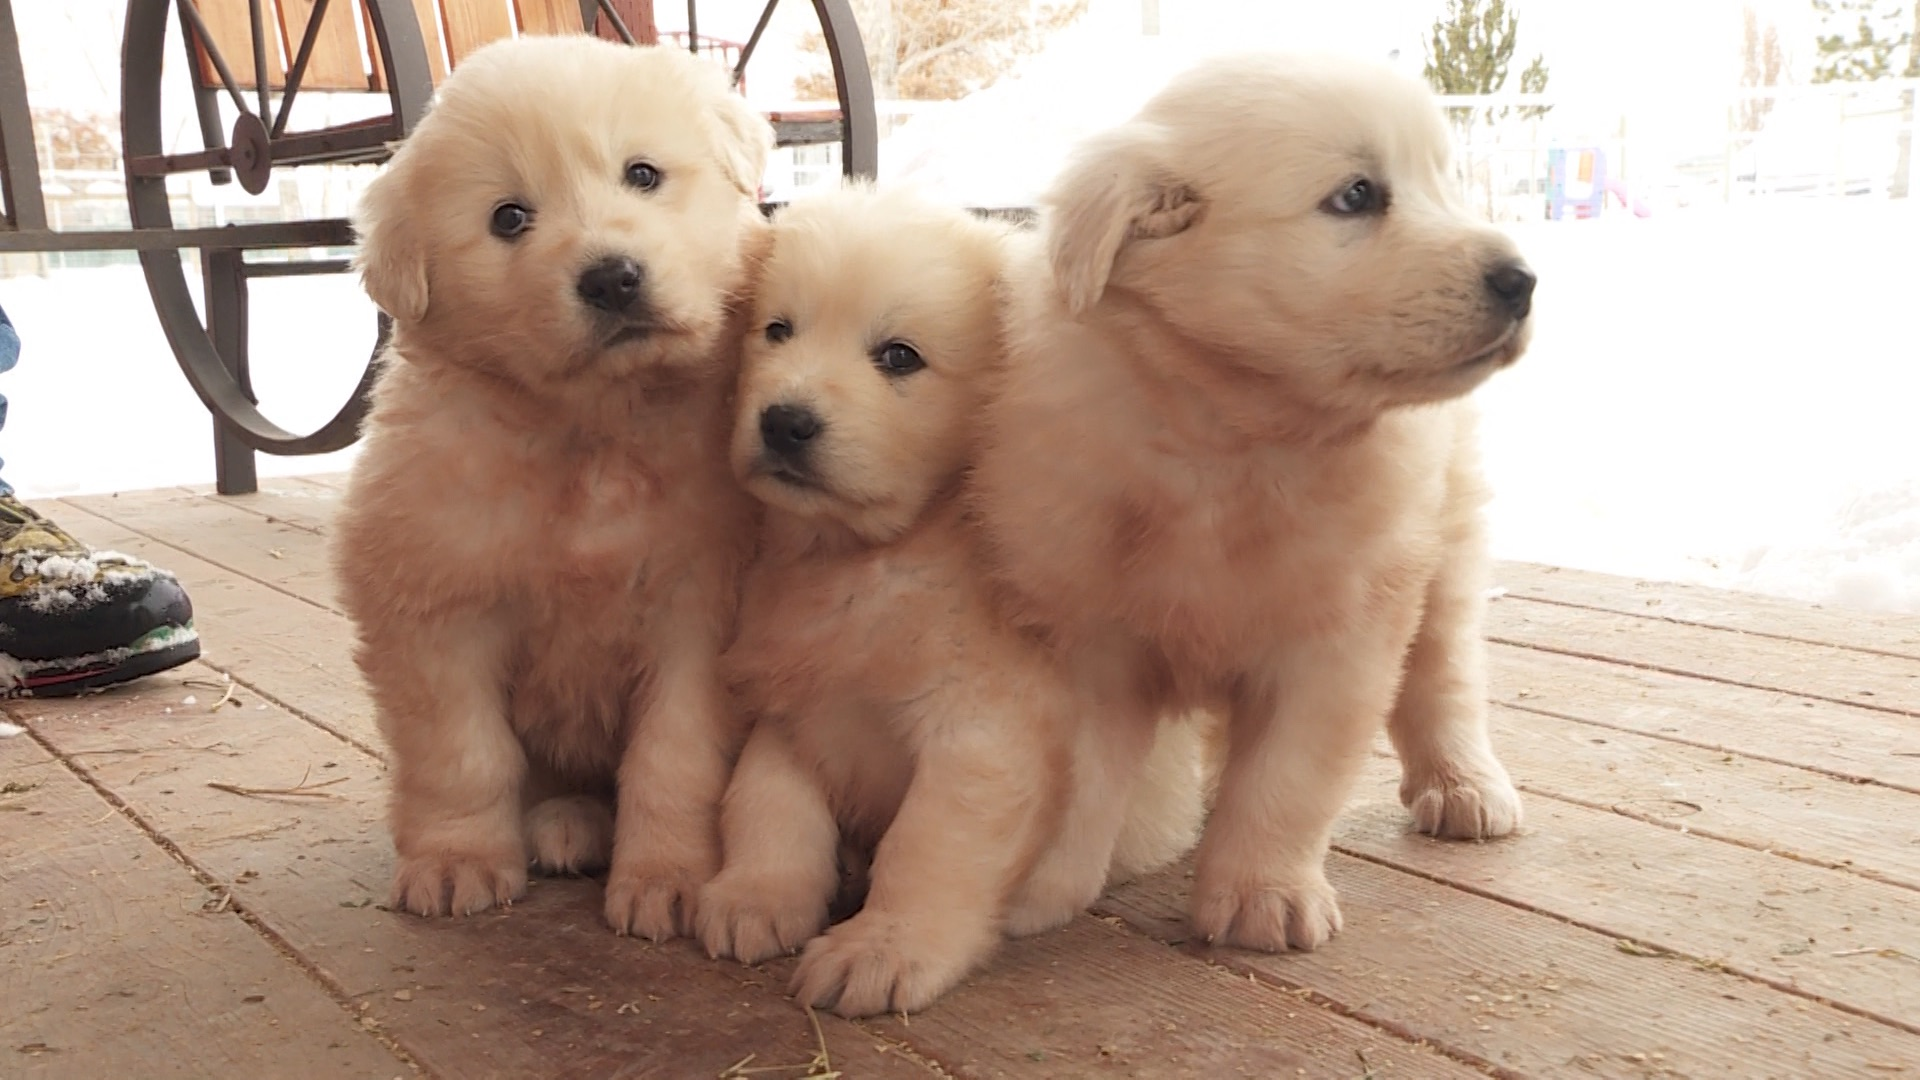 The CDC warned this week that puppies may be causing an outbreak of an infection across multiple states.